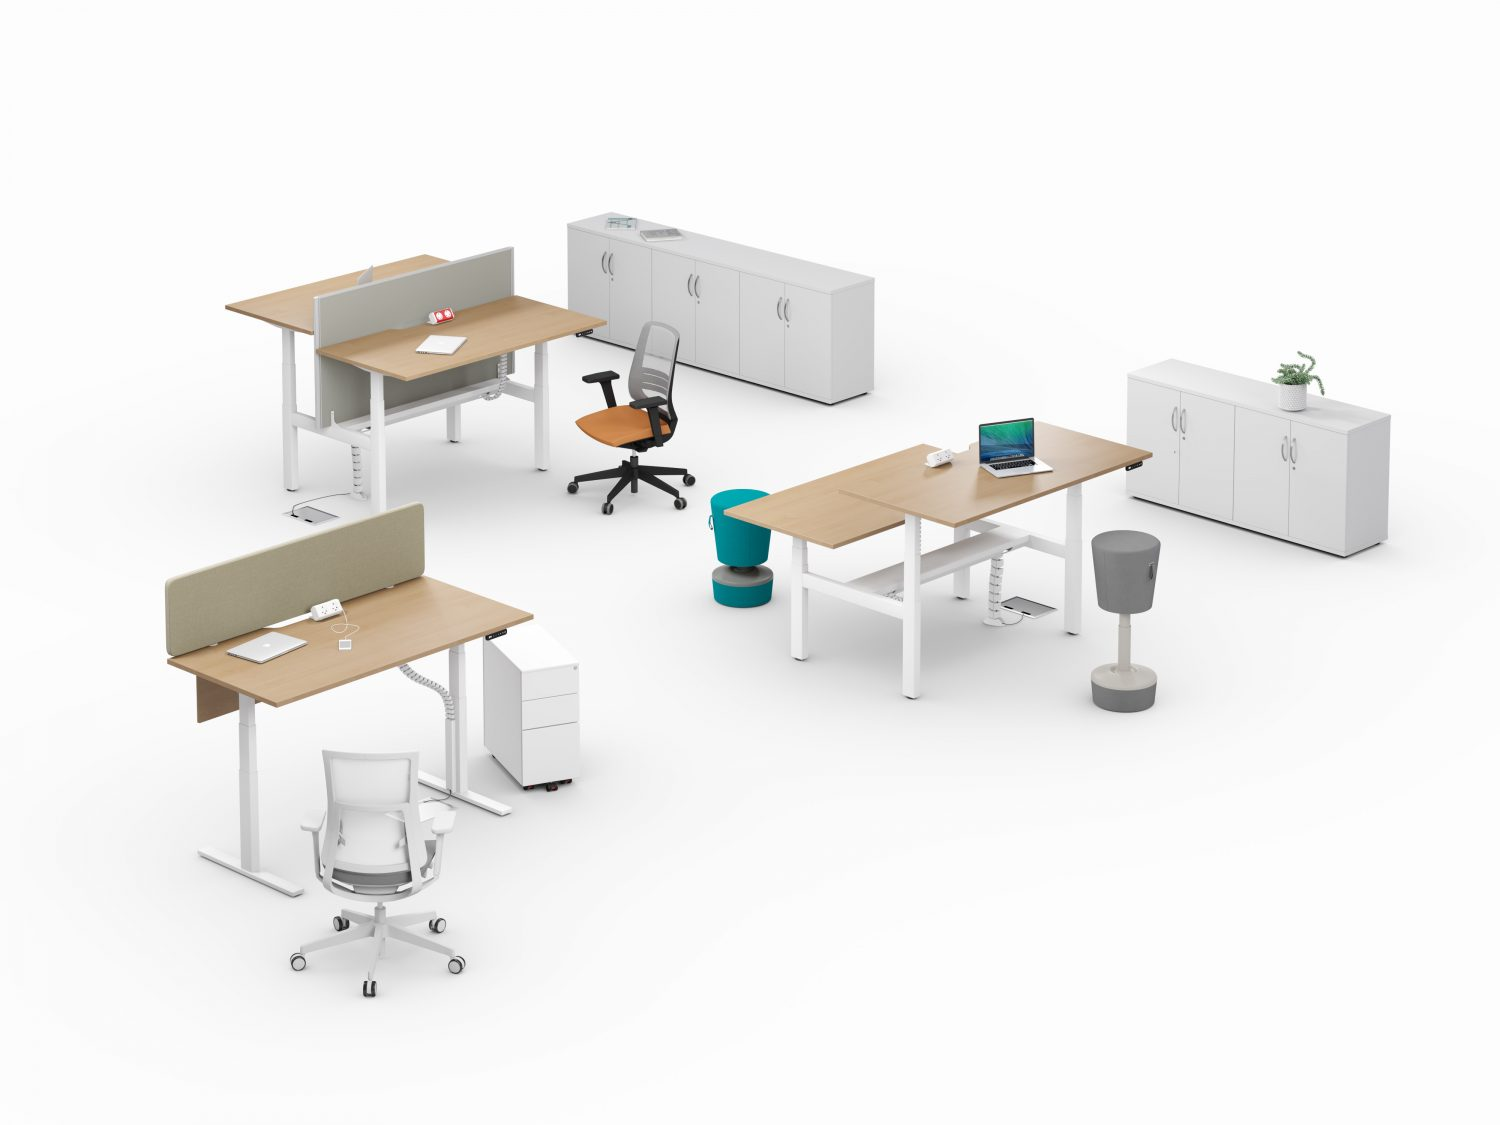 Health and wellbeing office products